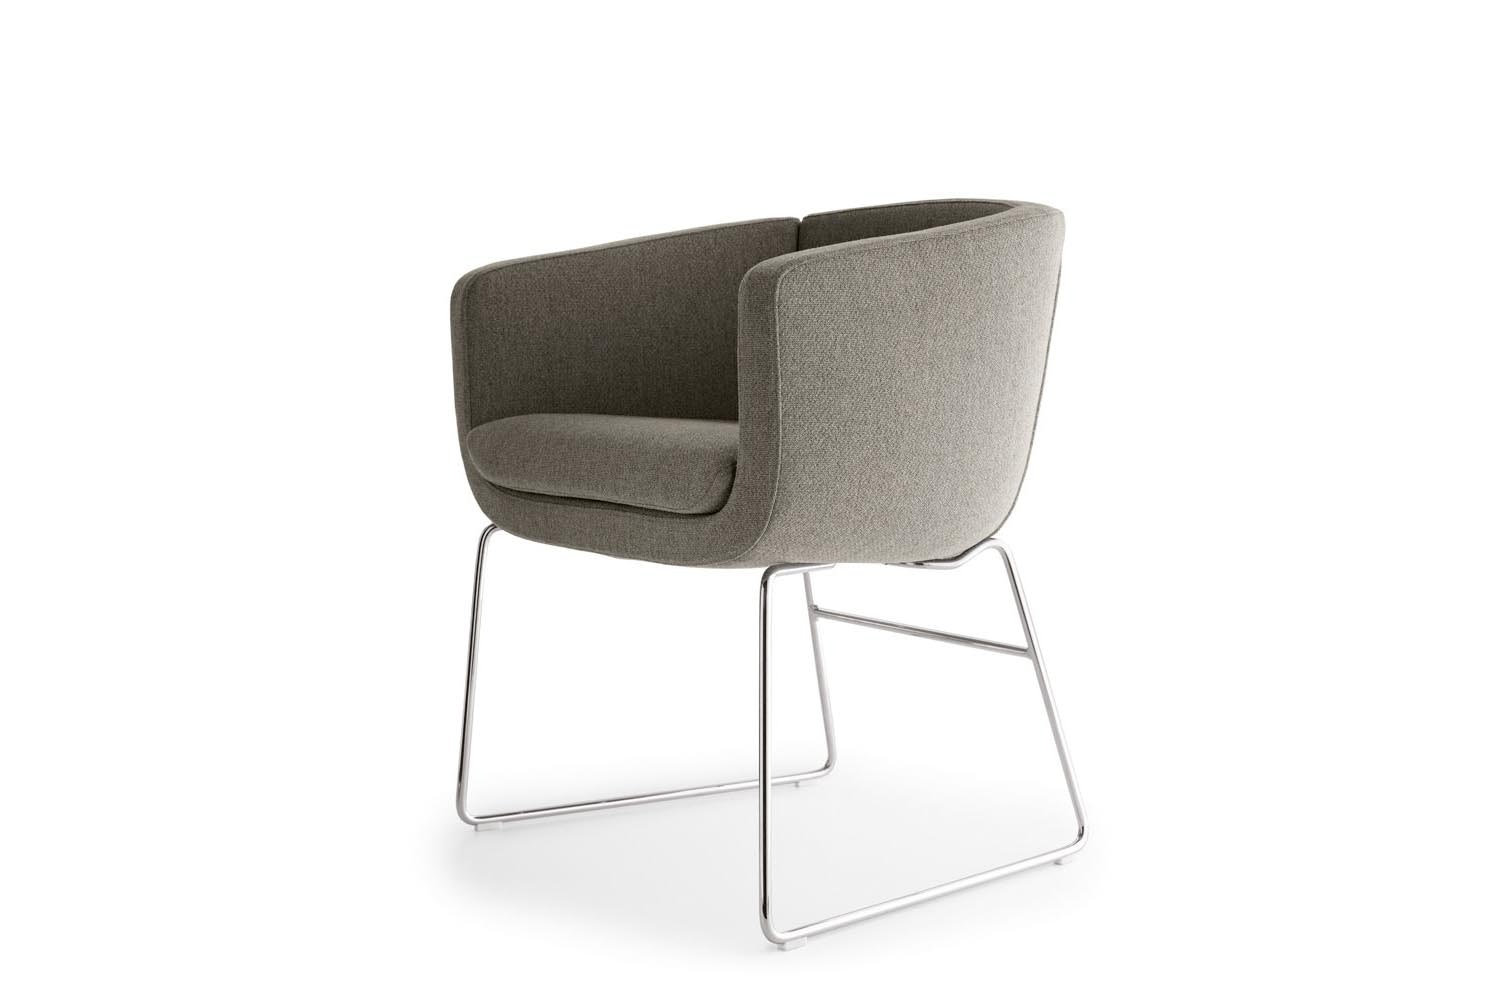 Tulip Sixty Armchair by Jeffrey Bernett for B&B Italia Project